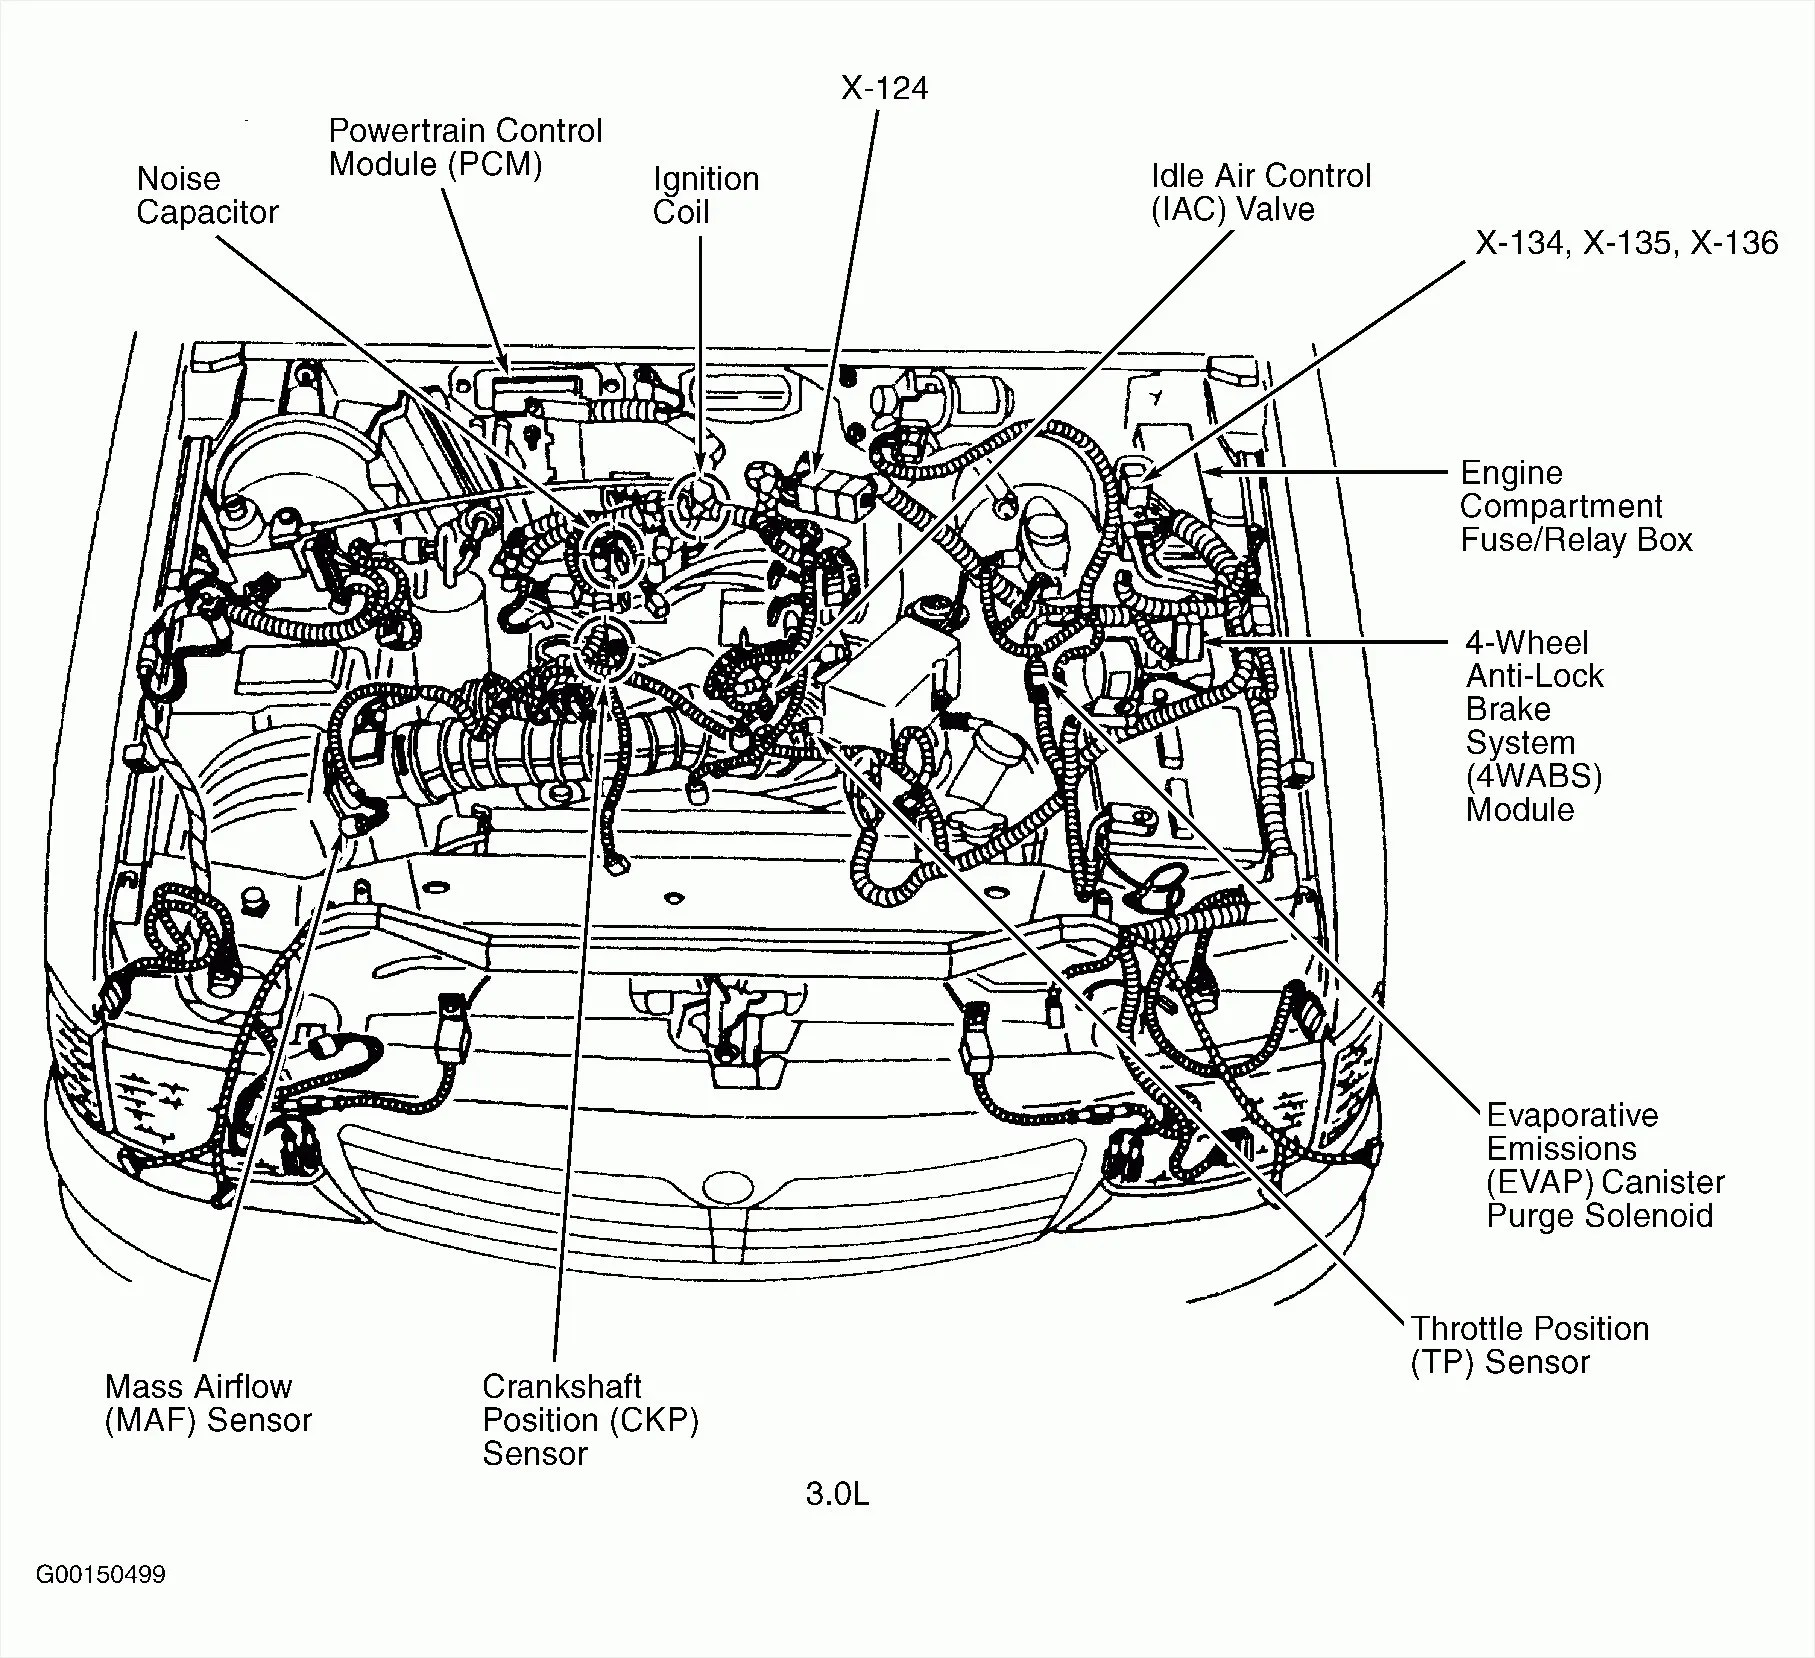 hight resolution of 2000 7 3l engine diagram wiring diagram img 4 3l engine diagram